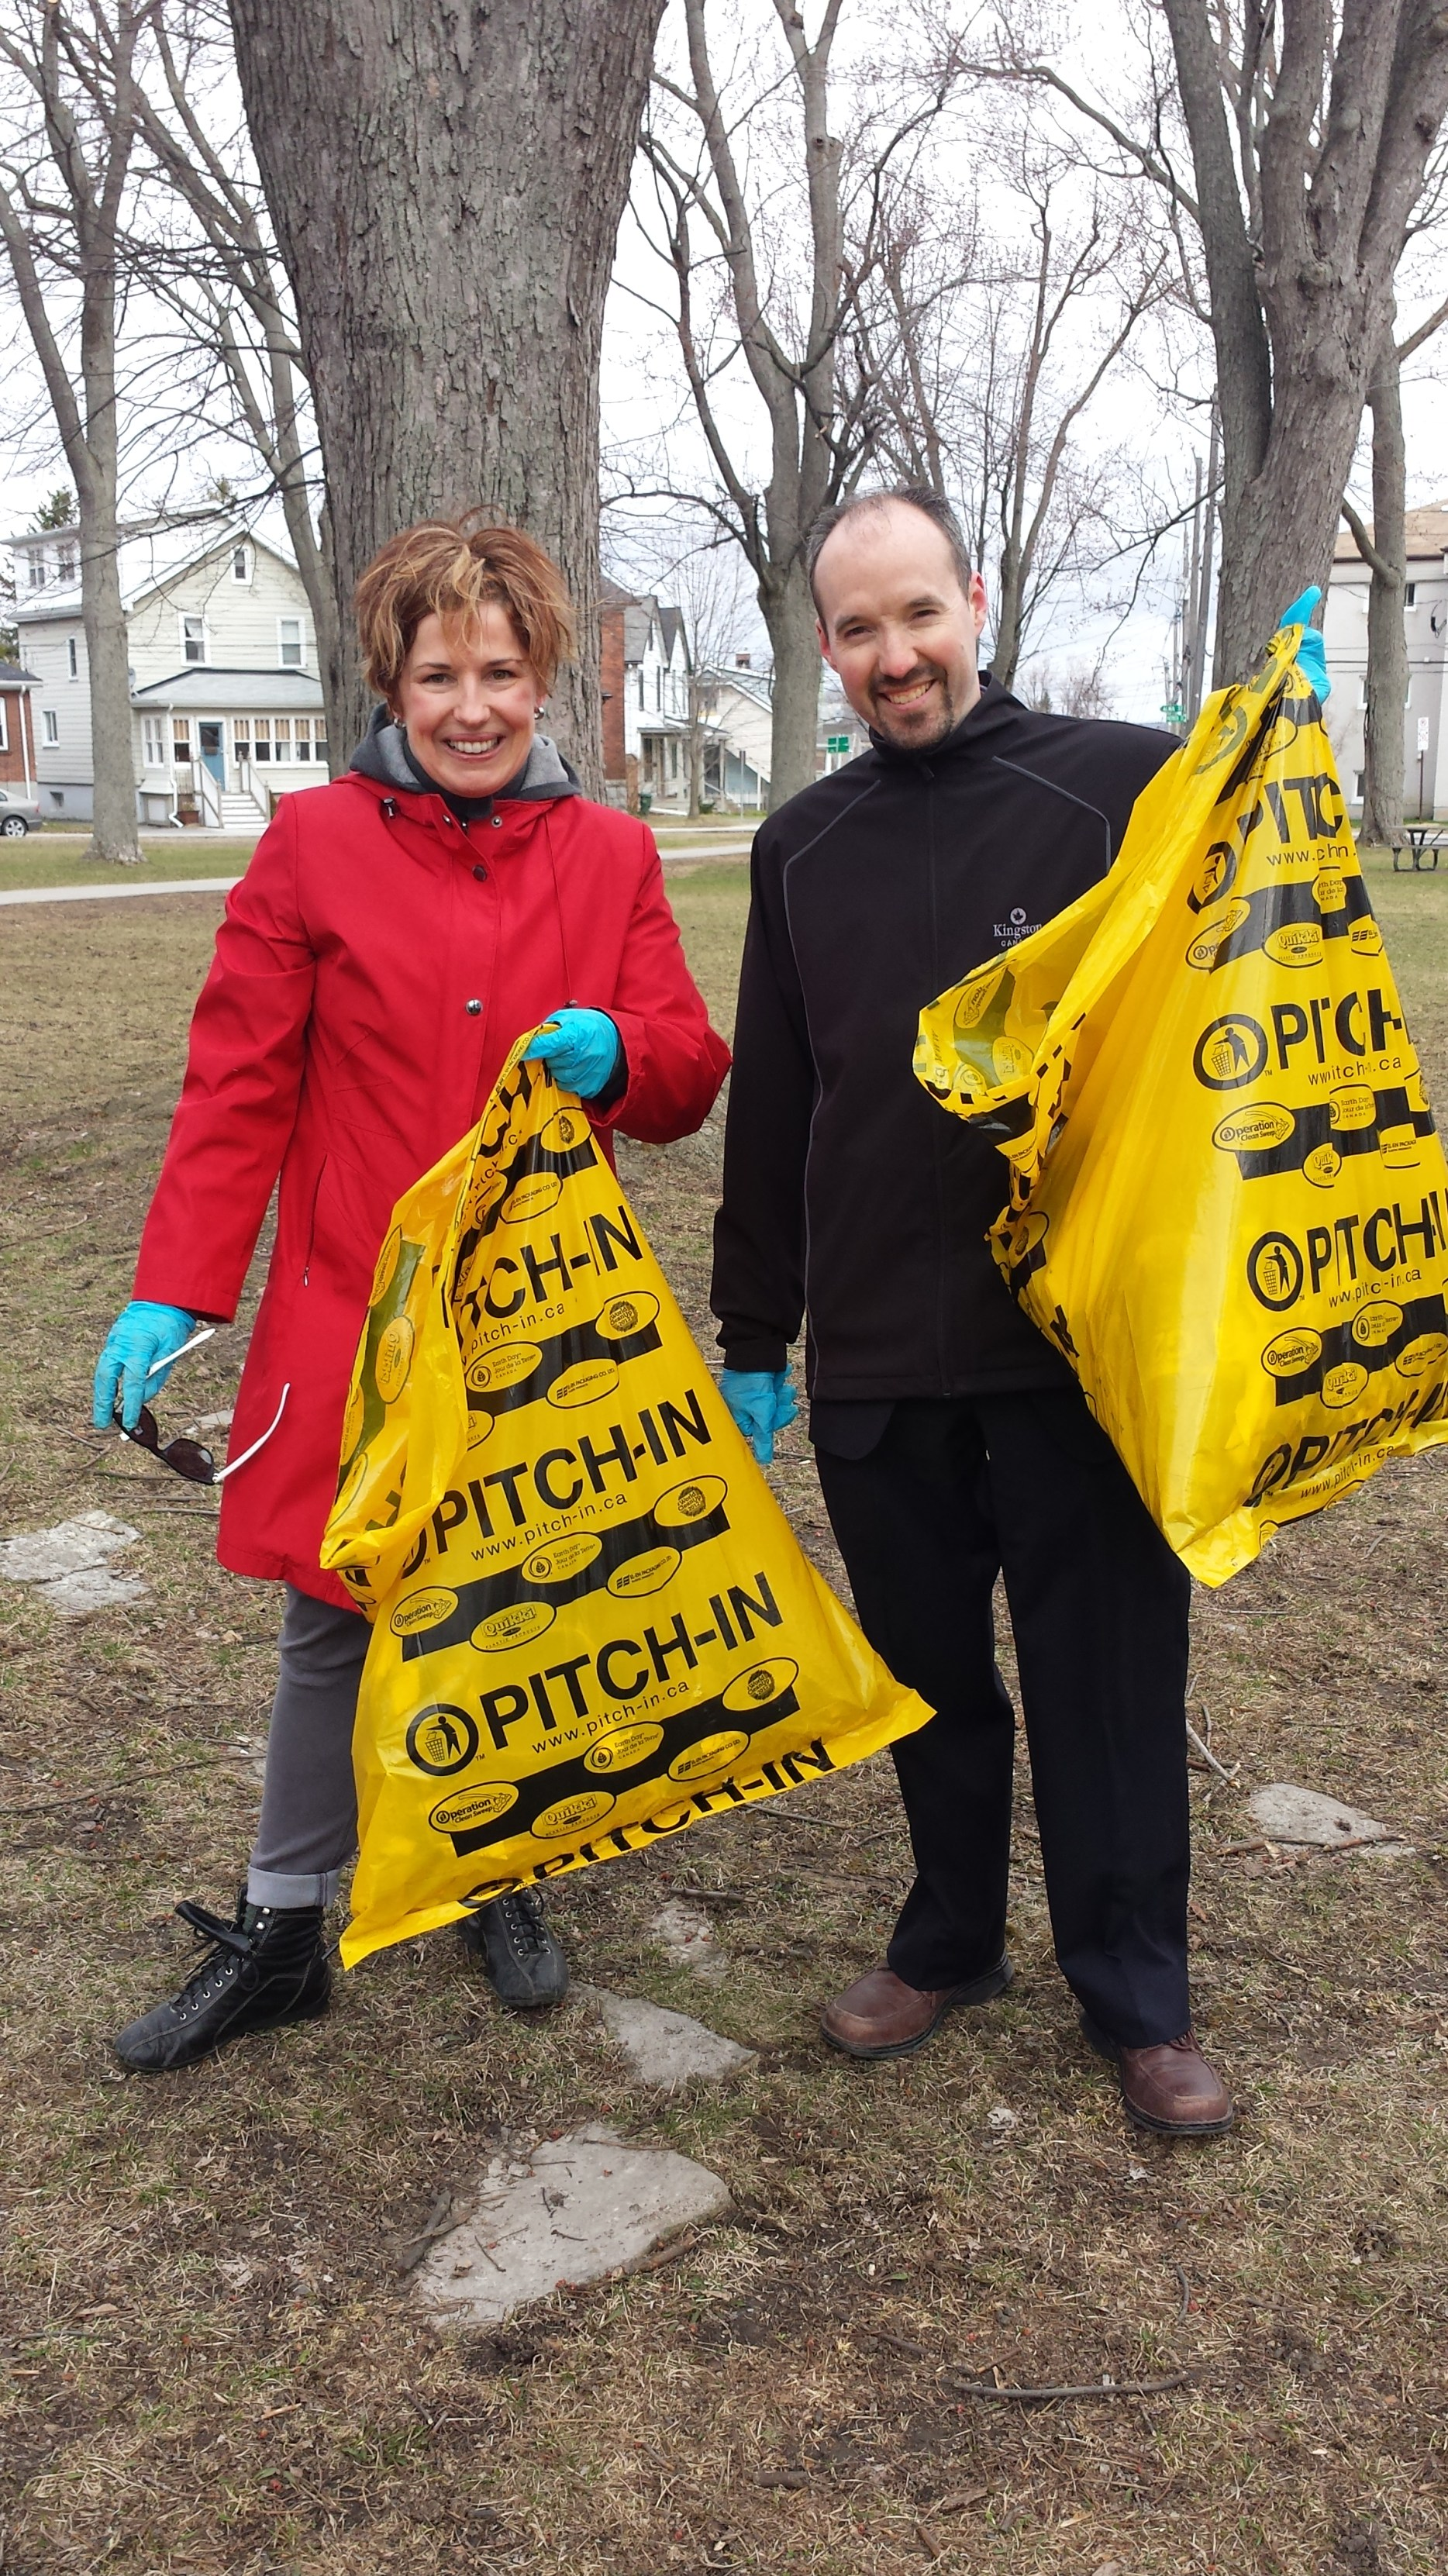 Joined by Councillor Holland to do our part in keeping our community clean for Pitch-In Kingston Day - April 24